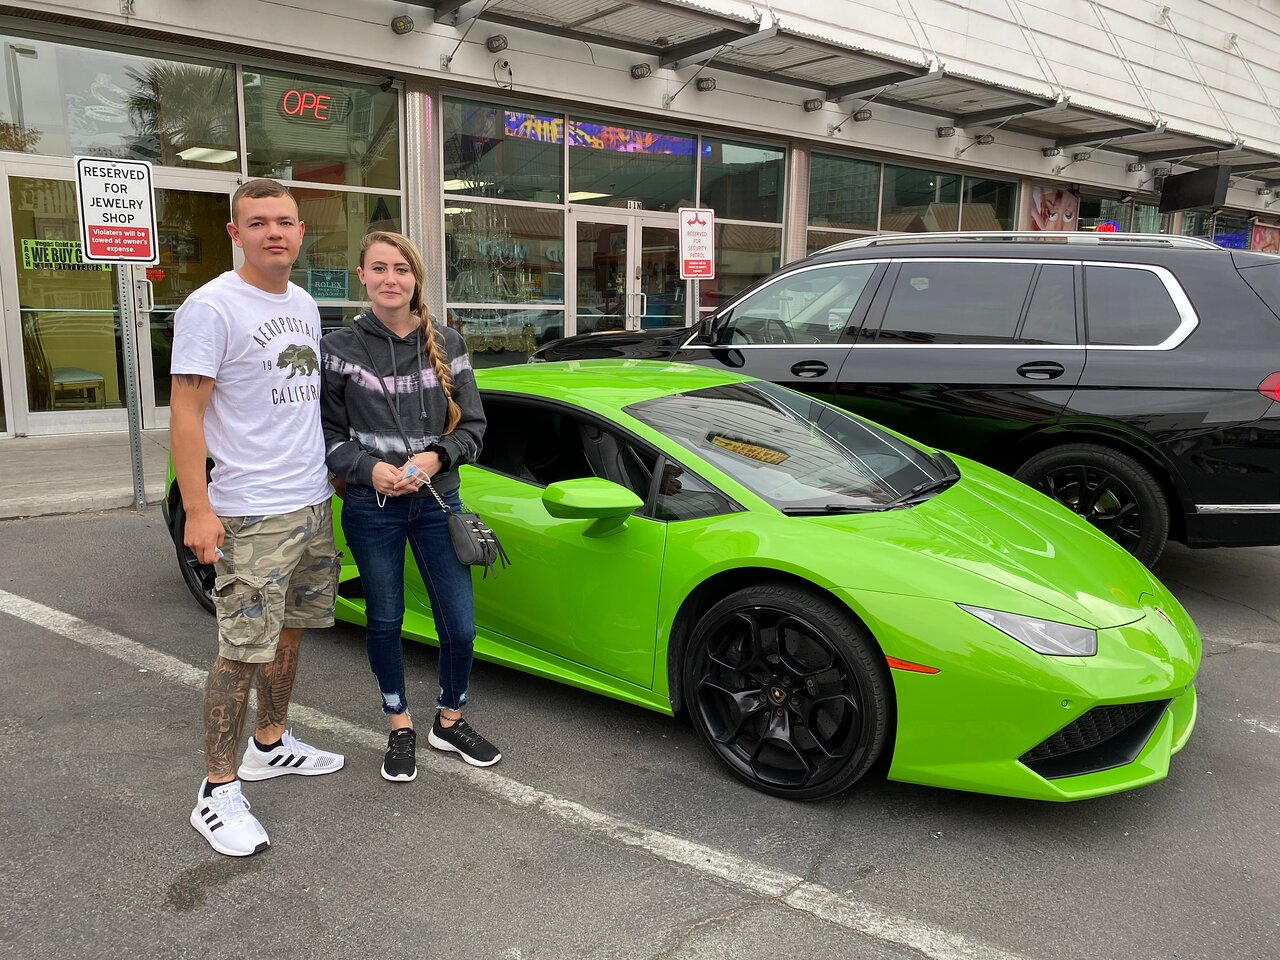 Lvc Exotic Car Rentals Las Vegas 2021 All You Need To Know Before You Go With Photos Tripadvisor